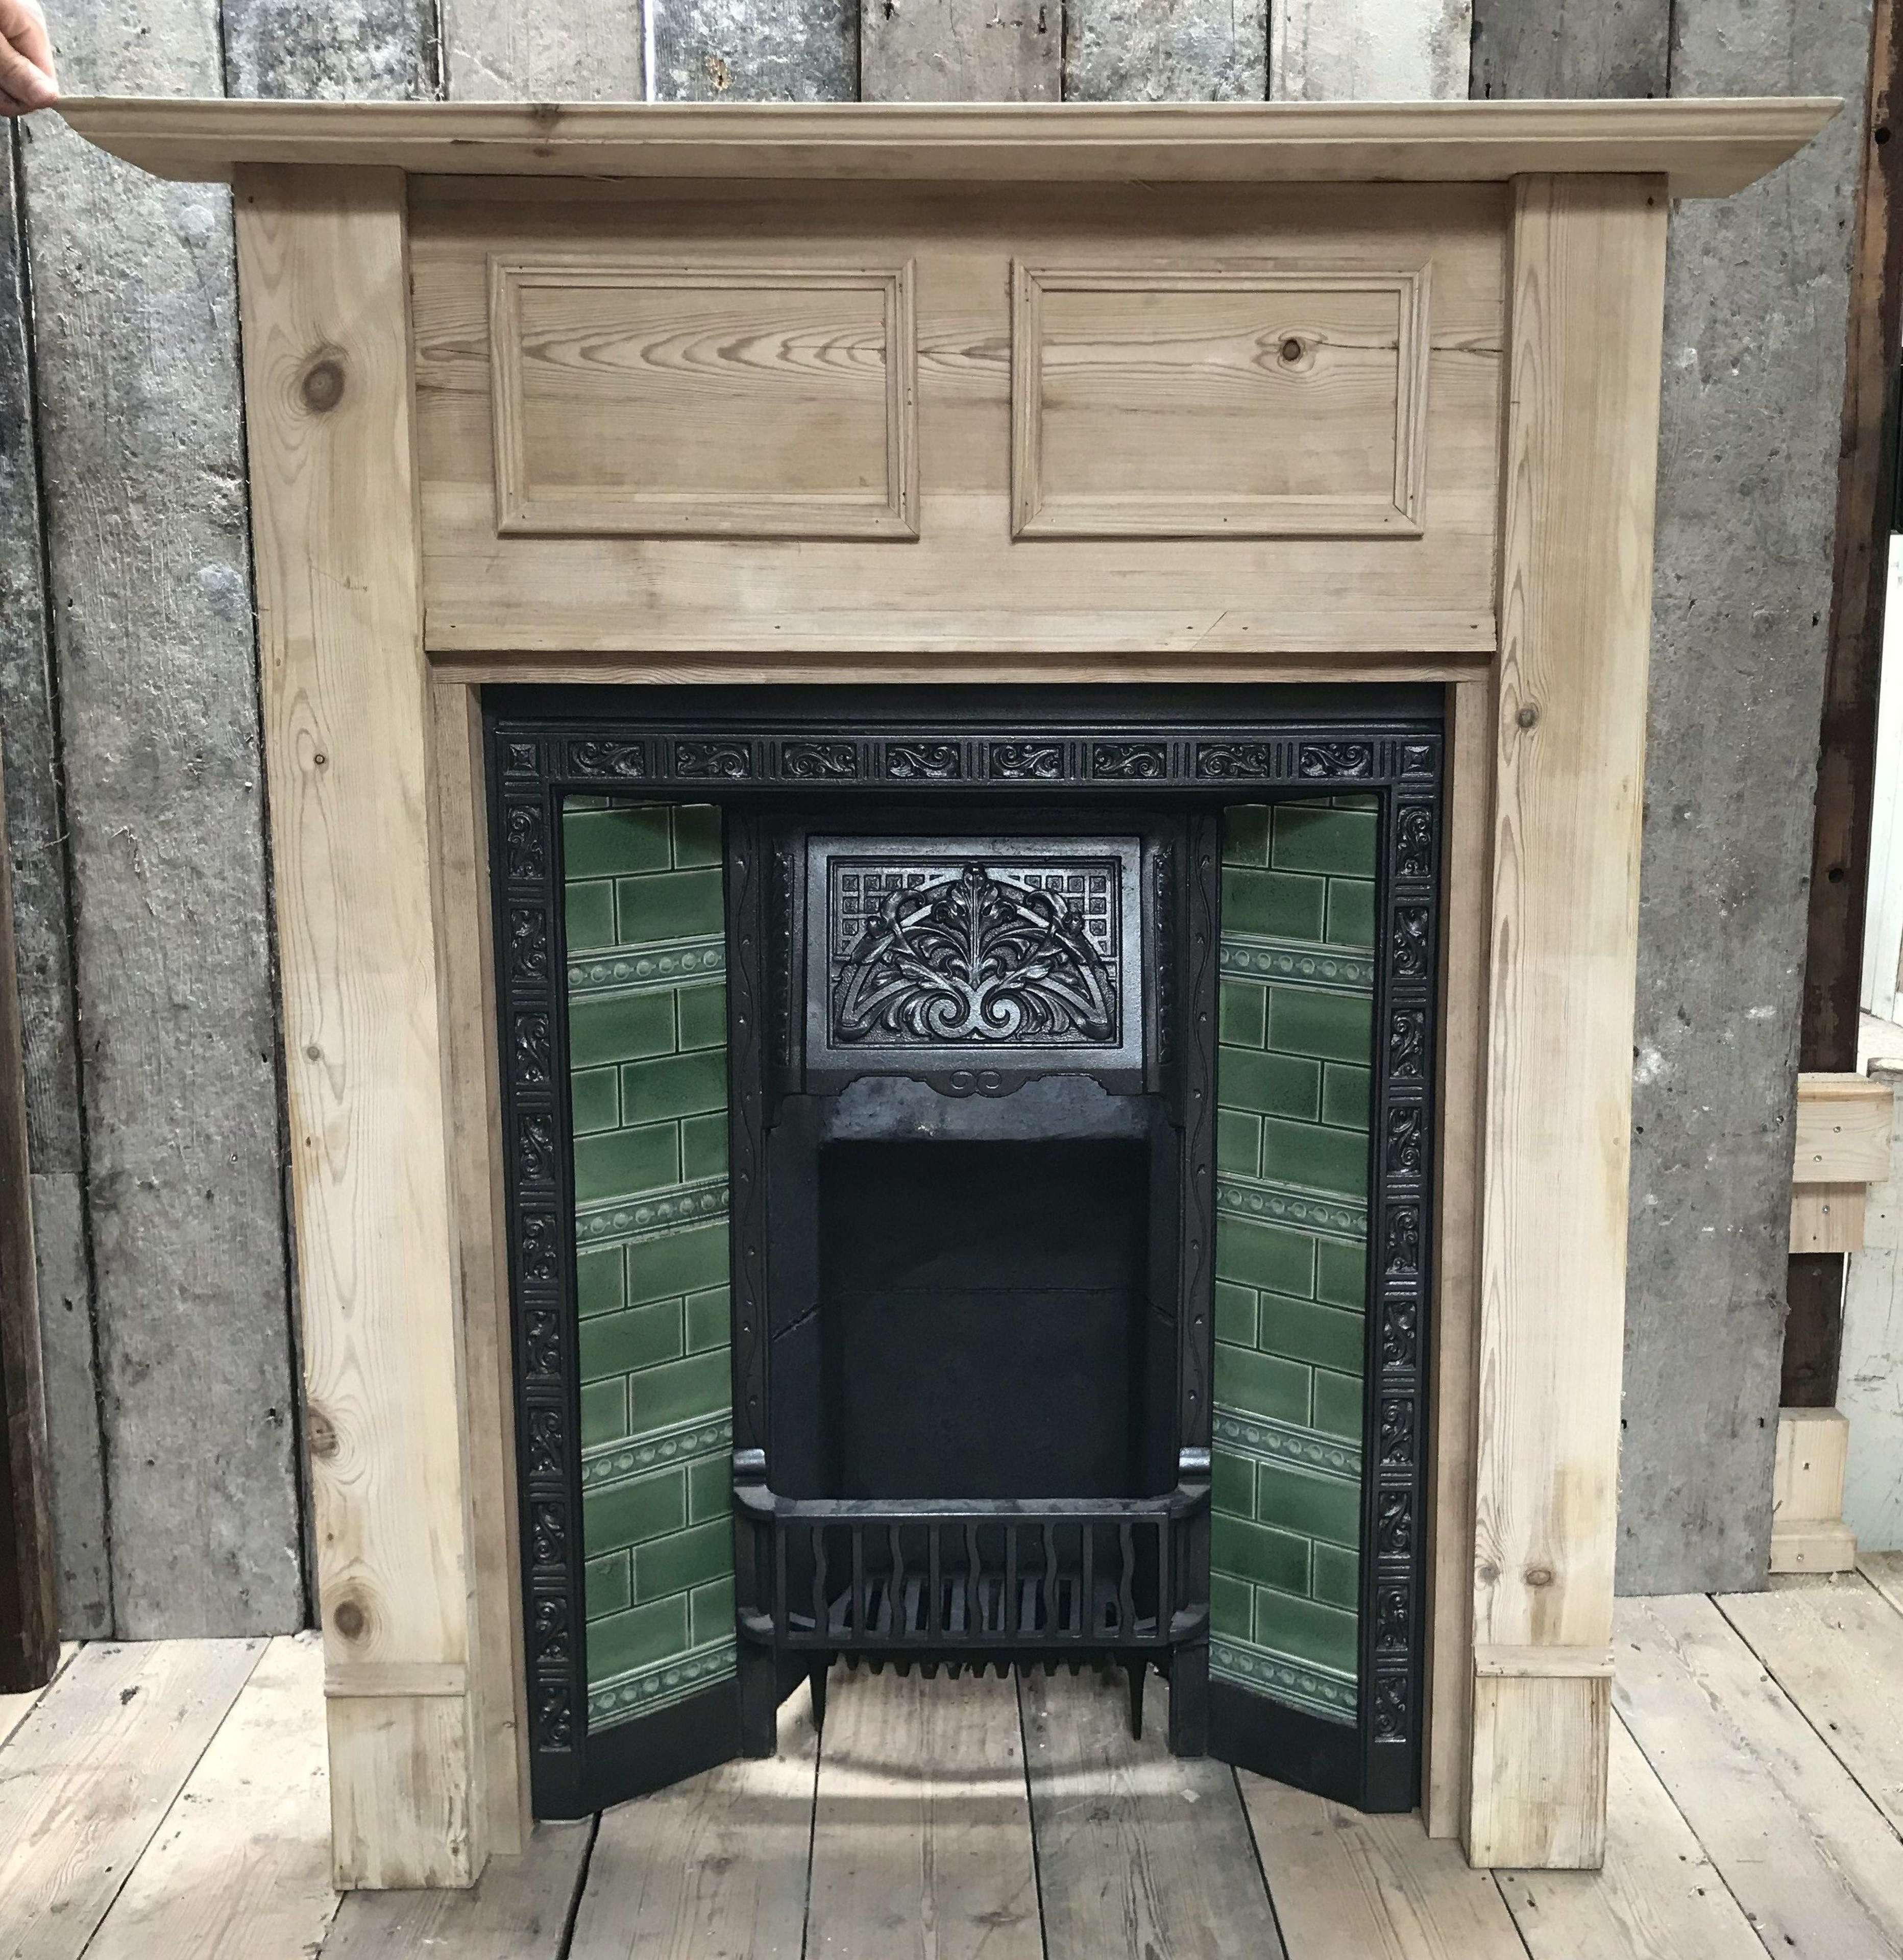 FC0085 A TILED EDWARDIAN FIRE INSERT WITH RECLAIMED PINE FIRE SURROUND